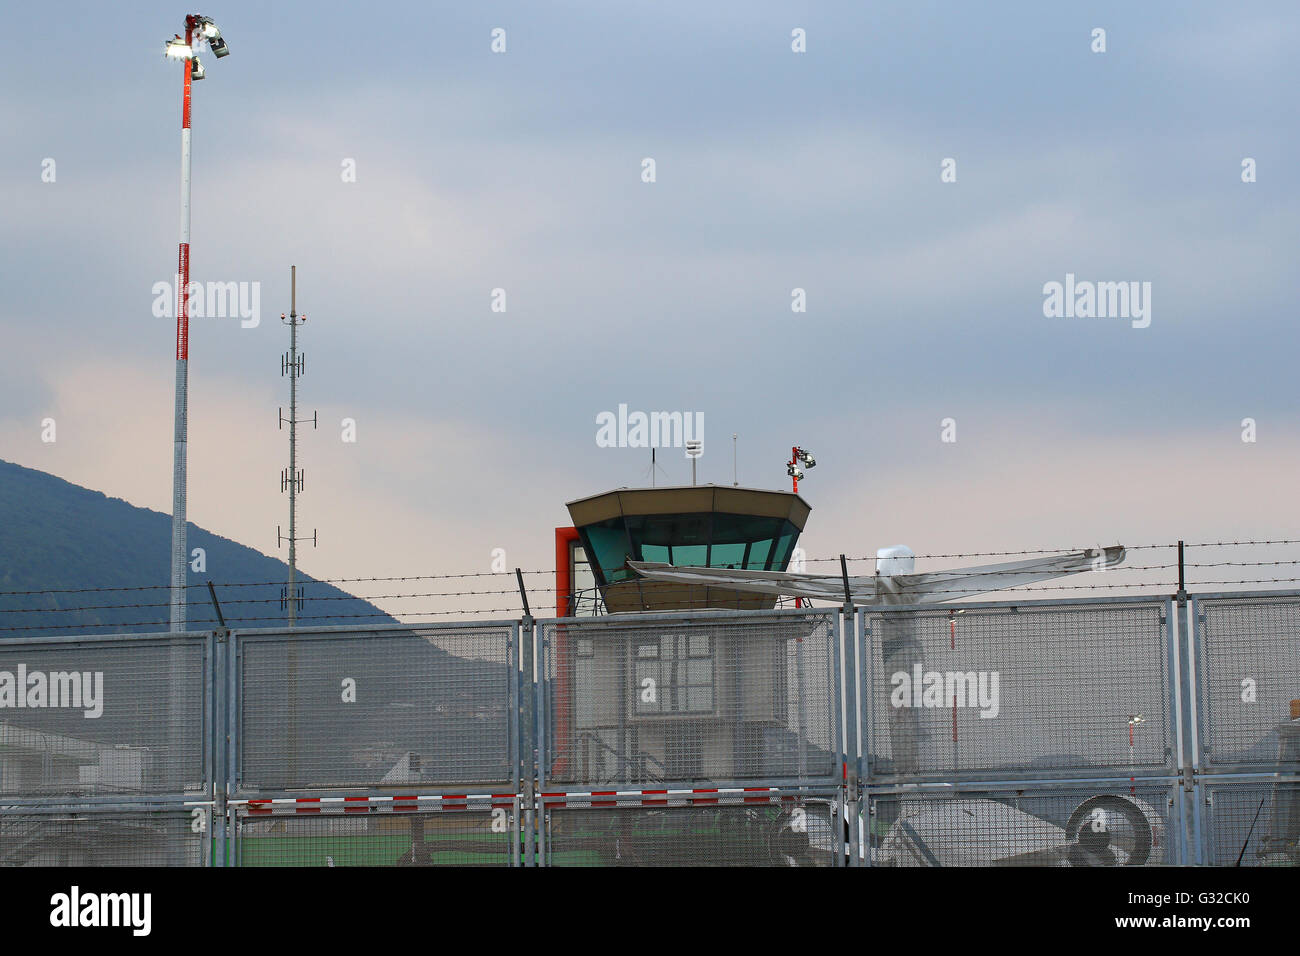 Small international airport with jet plane, control tower, safety barb wire fence and lighting equipment - Stock Image